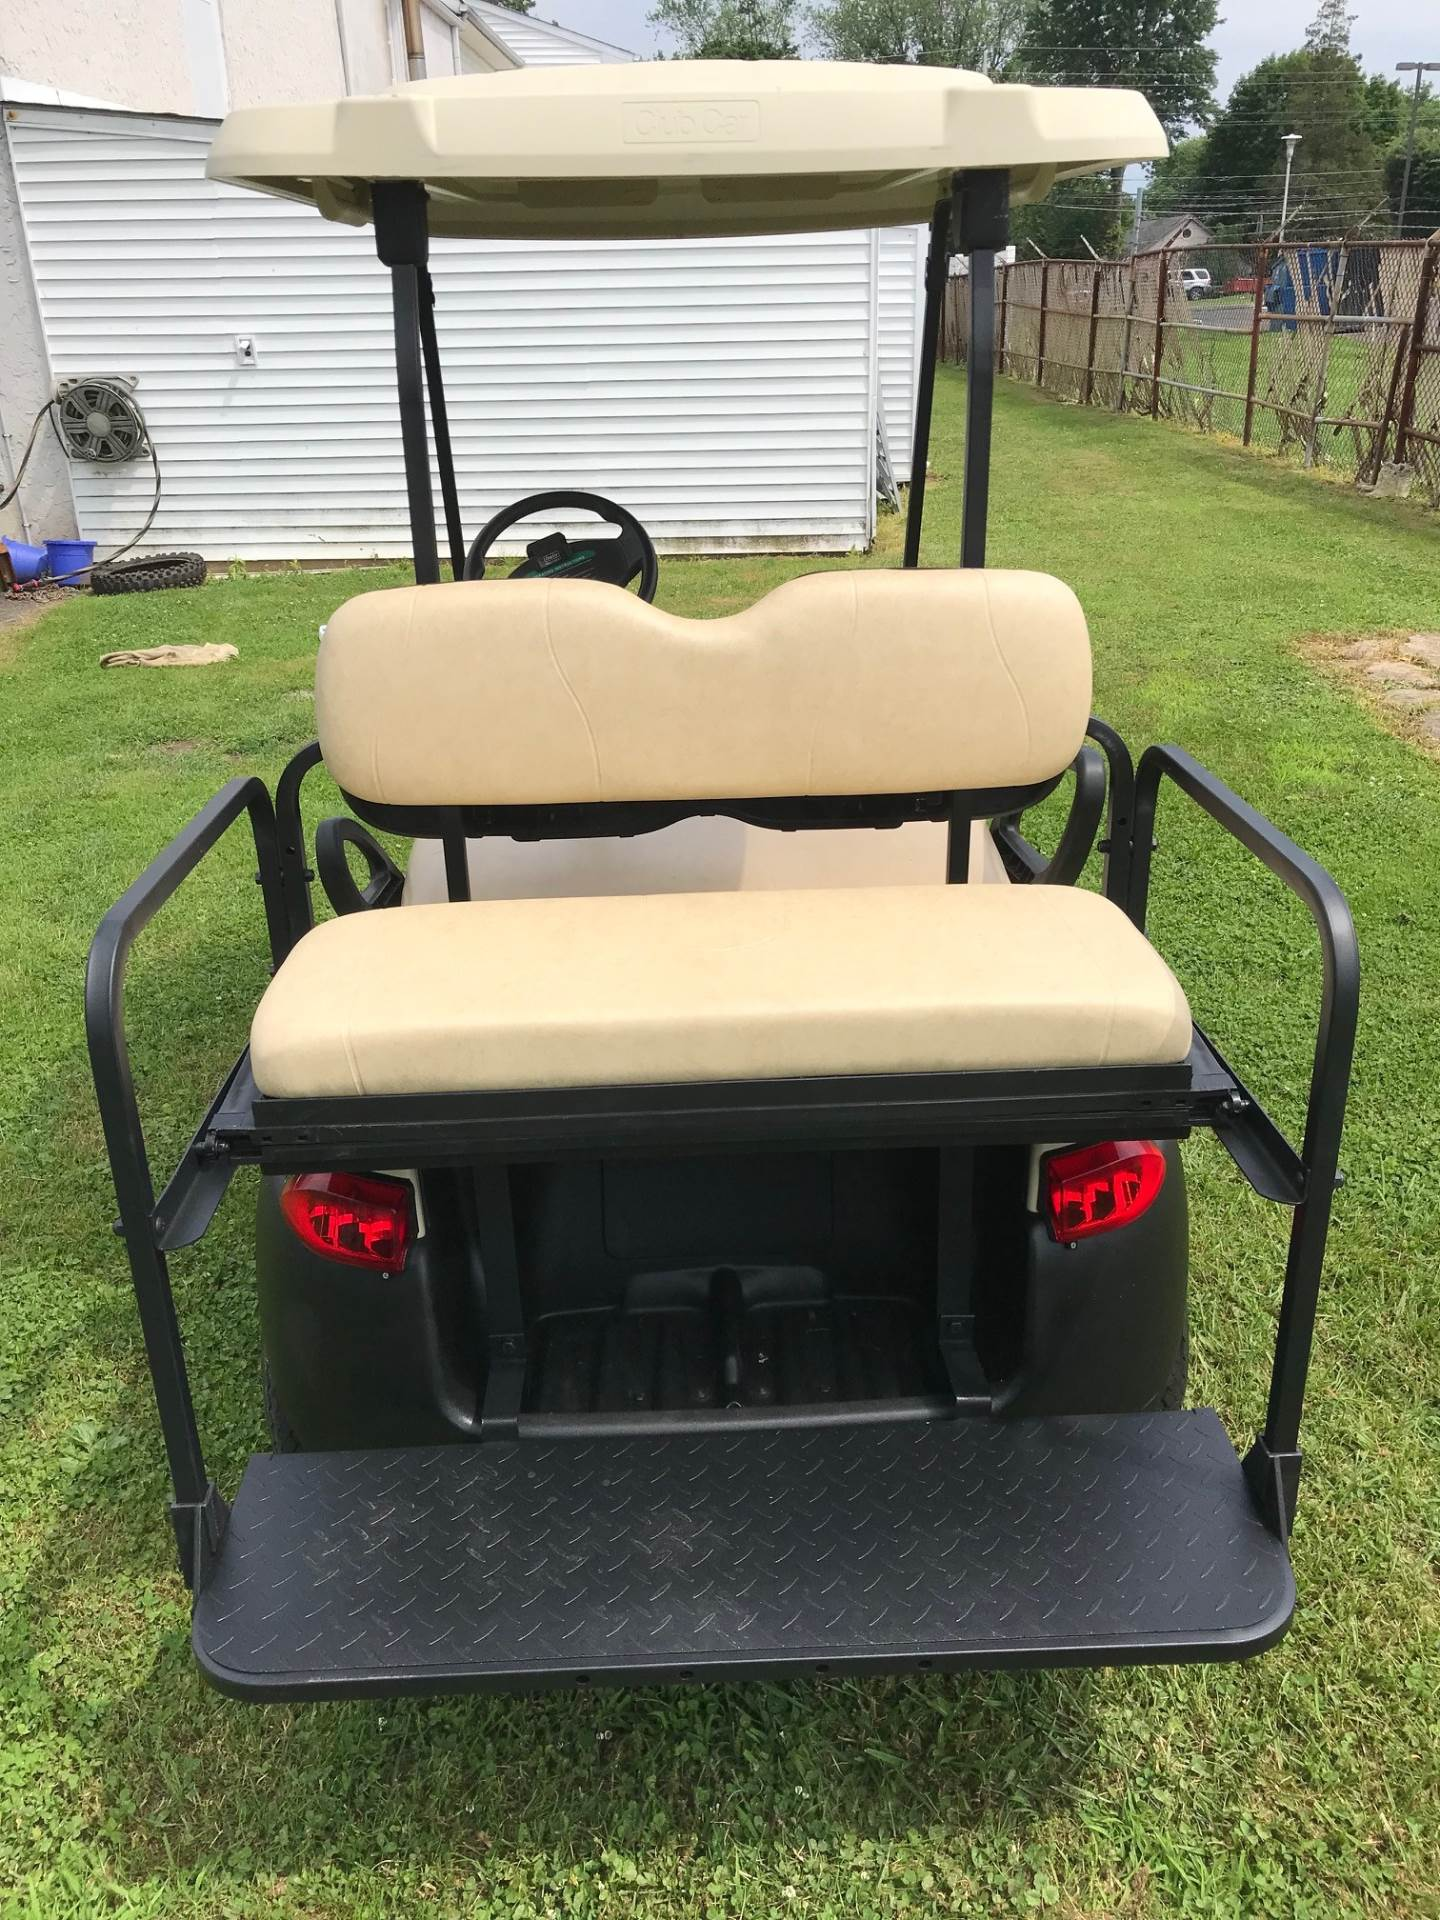 2013 Club Car Precedent i2 4-Passenger in Trevose, Pennsylvania - Photo 4